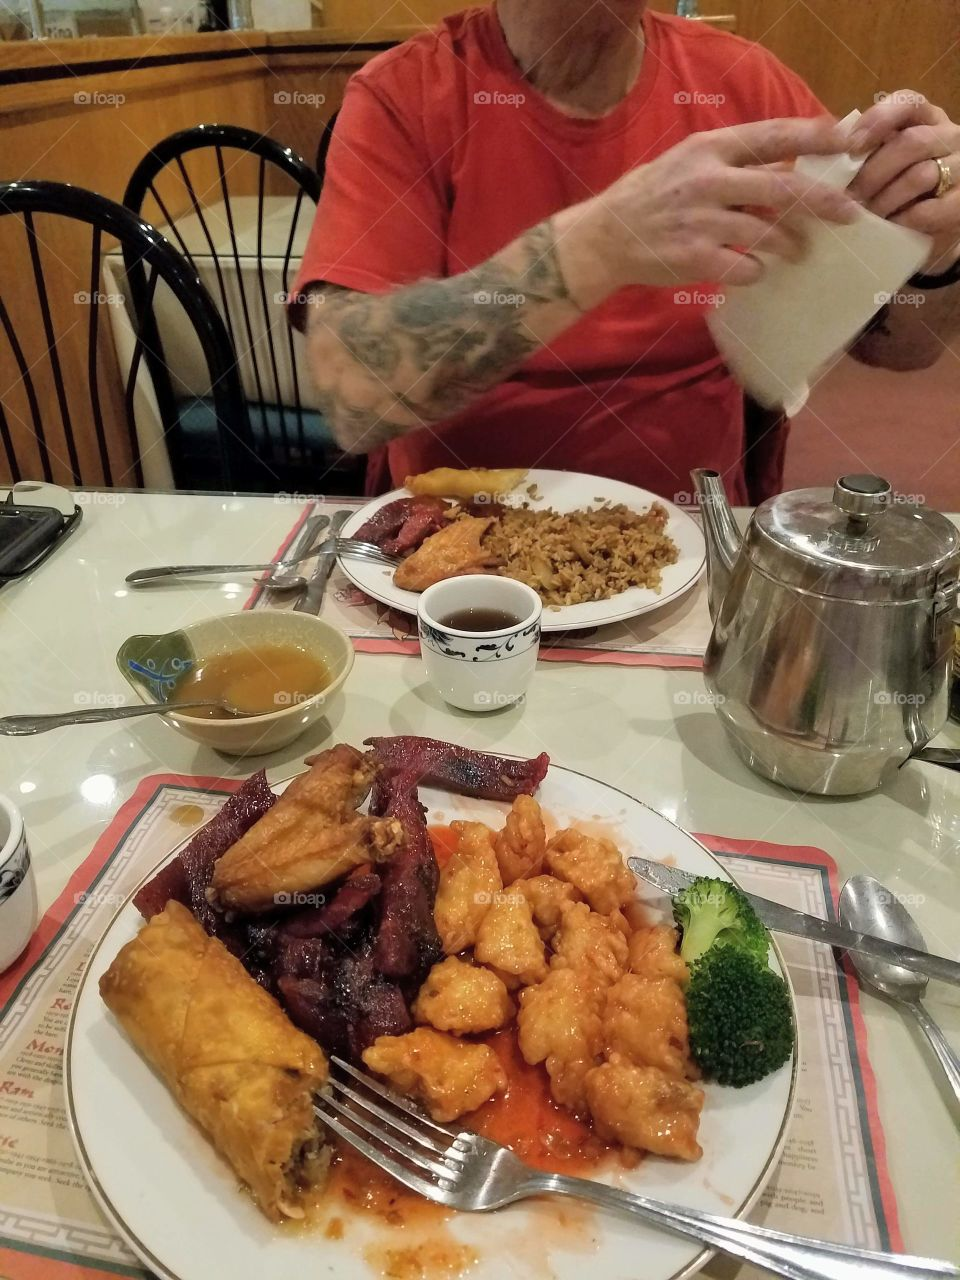 Chinese food for each of us. Rice, spare ribs, egg roll, wings, sweet sauce, tea.